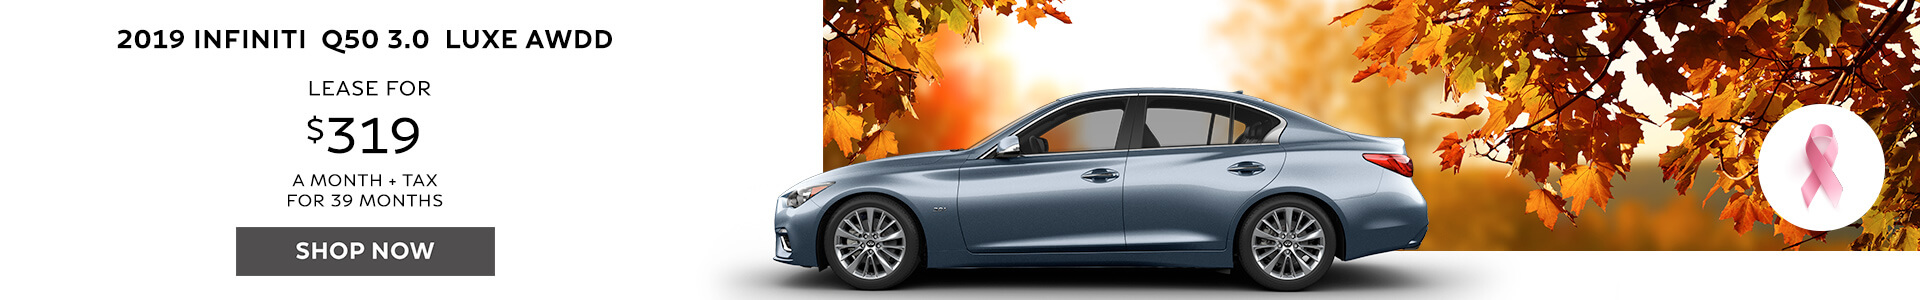 Q50 LUXE - Lease for $319